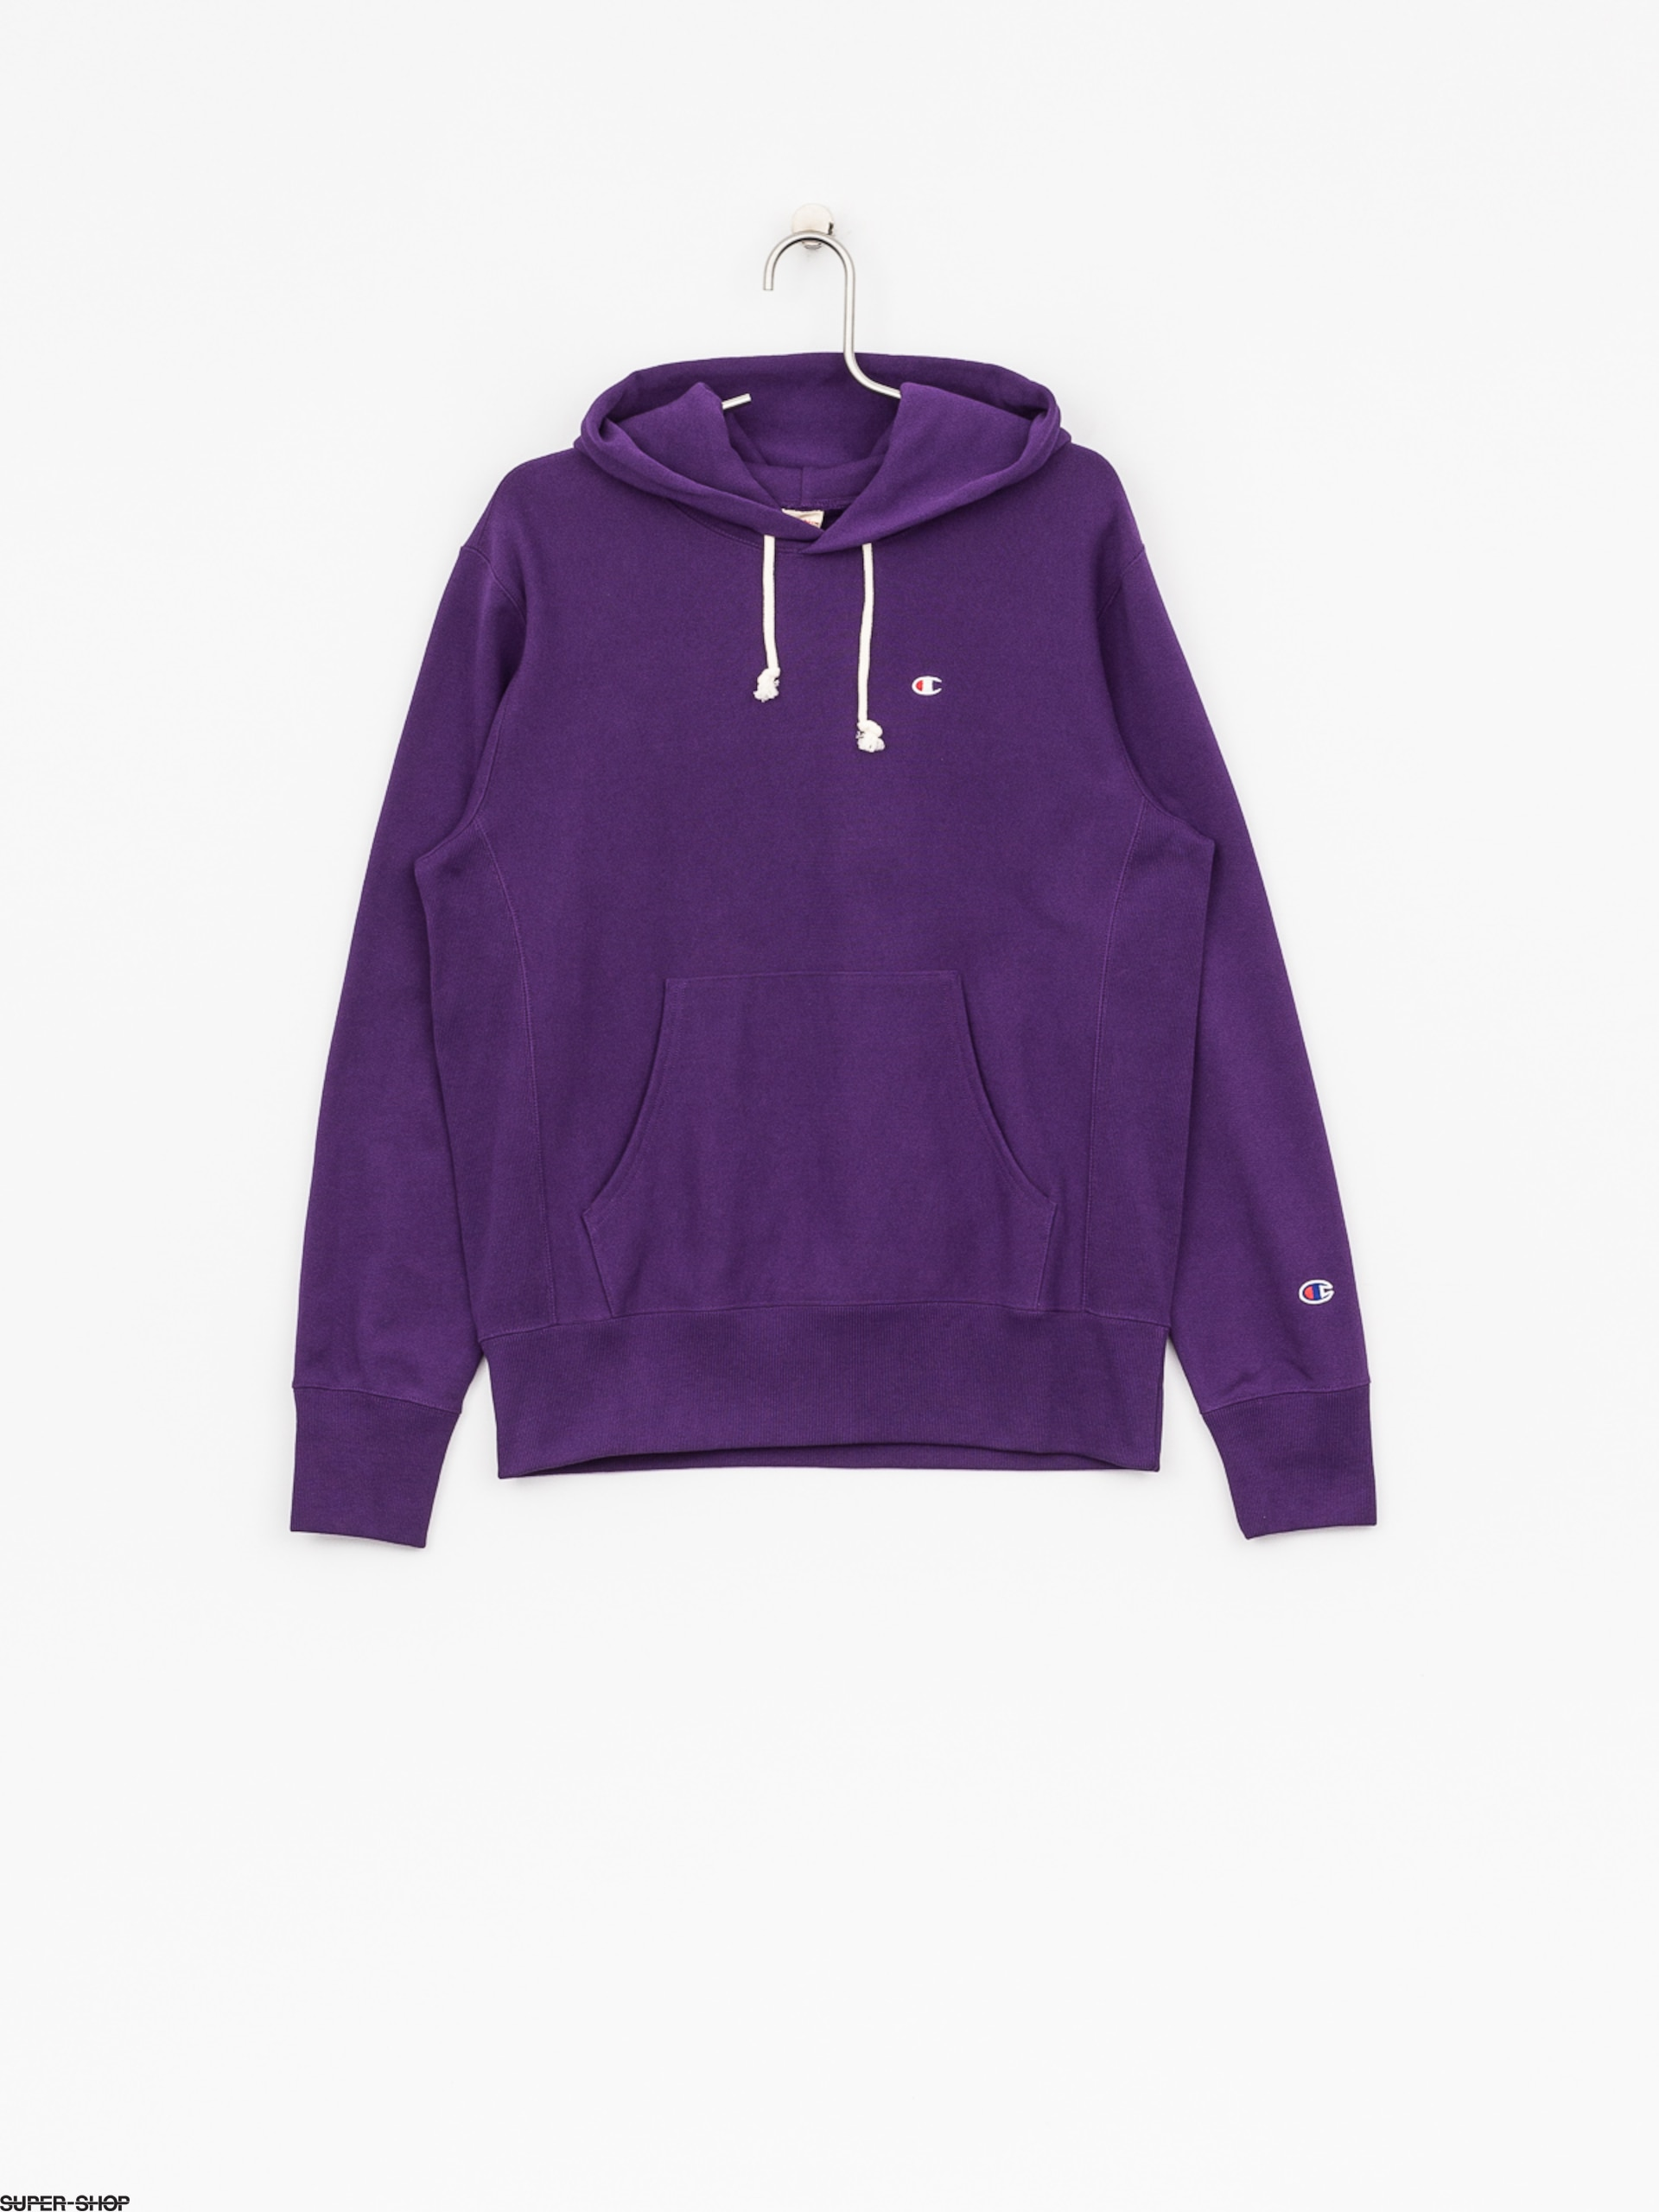 Champion Hoody Reverse Weave Hooded Sweatshirt HD (prv)